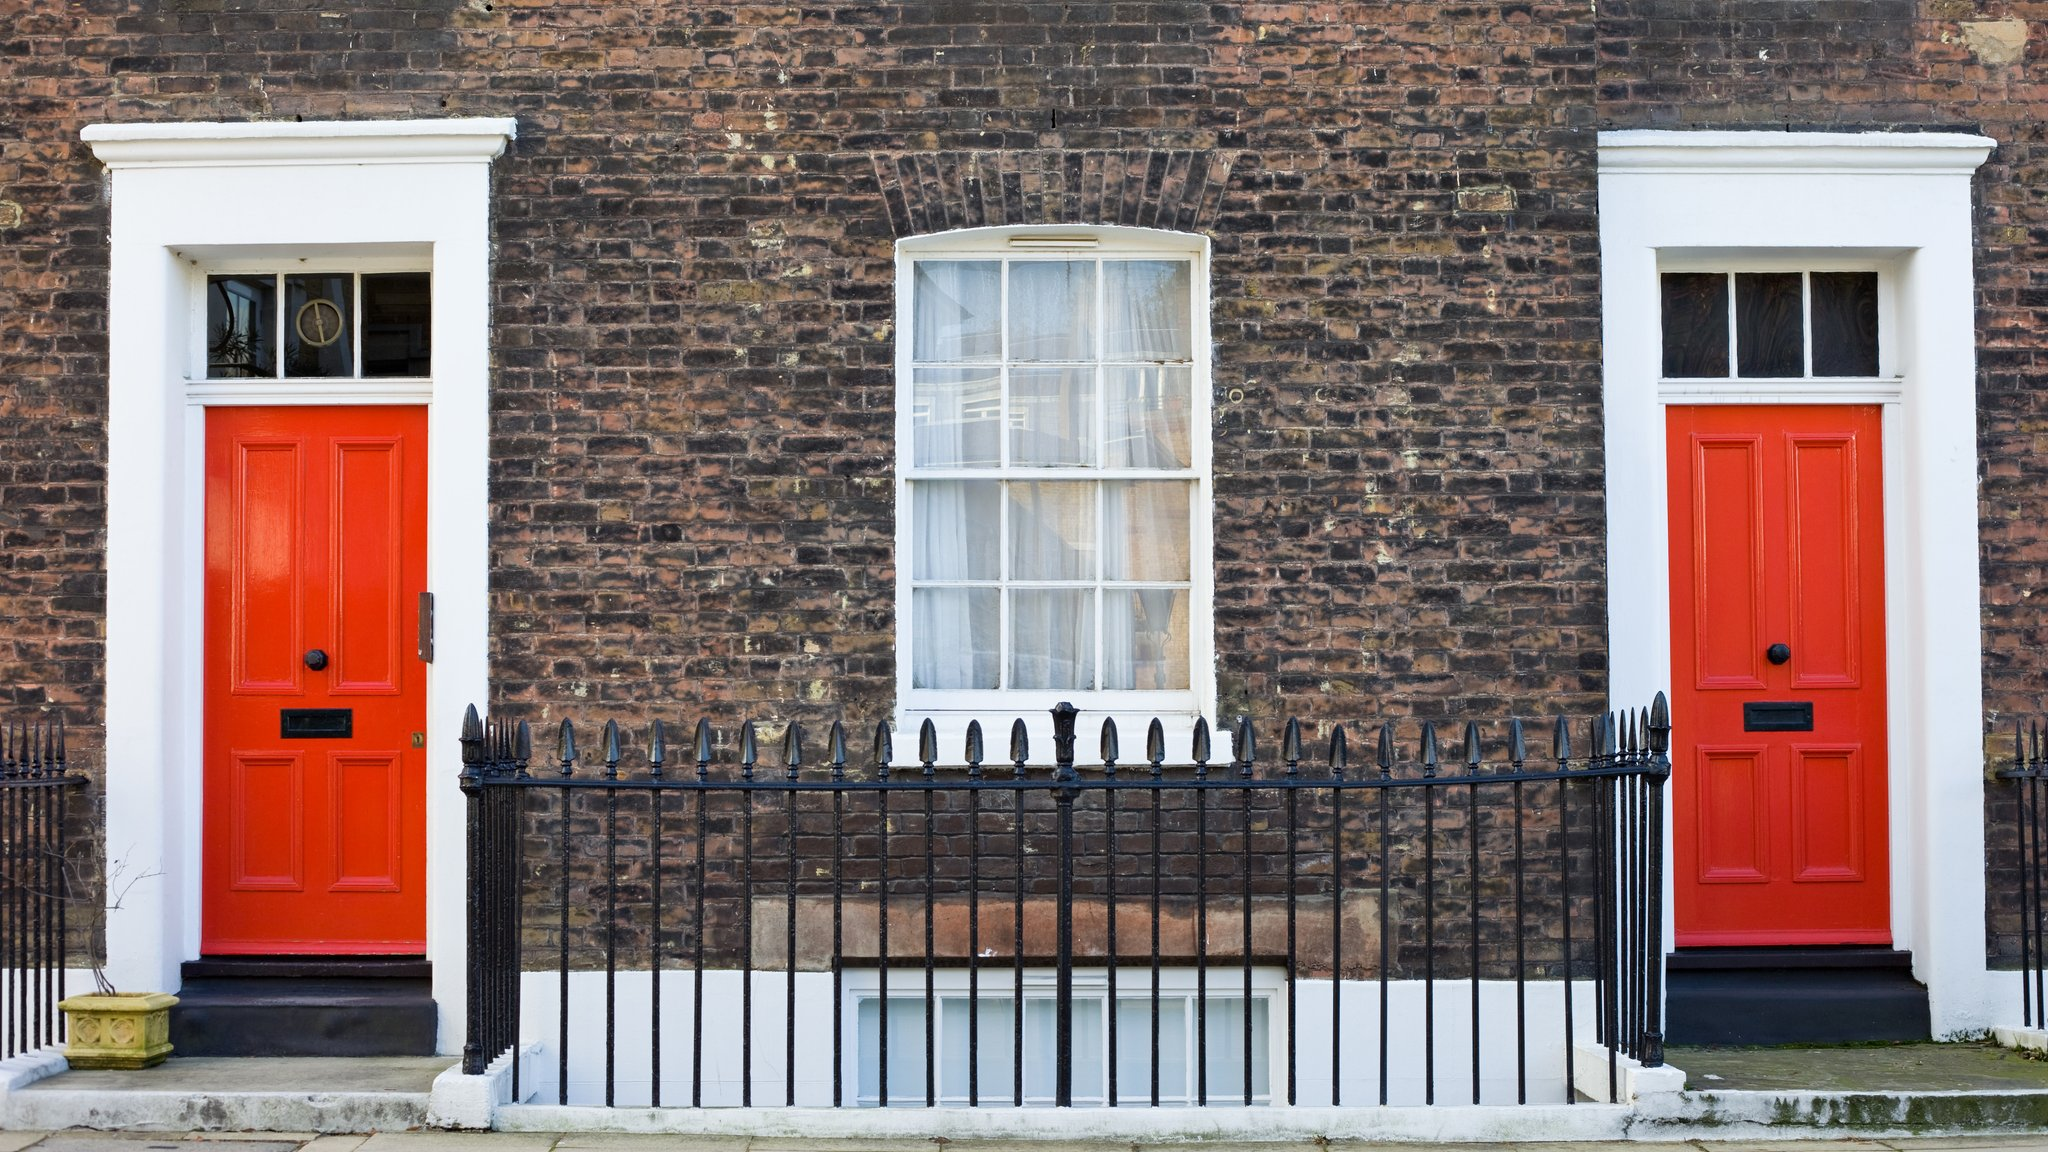 Brexit gloom to hit housing market into 2019, says RICS